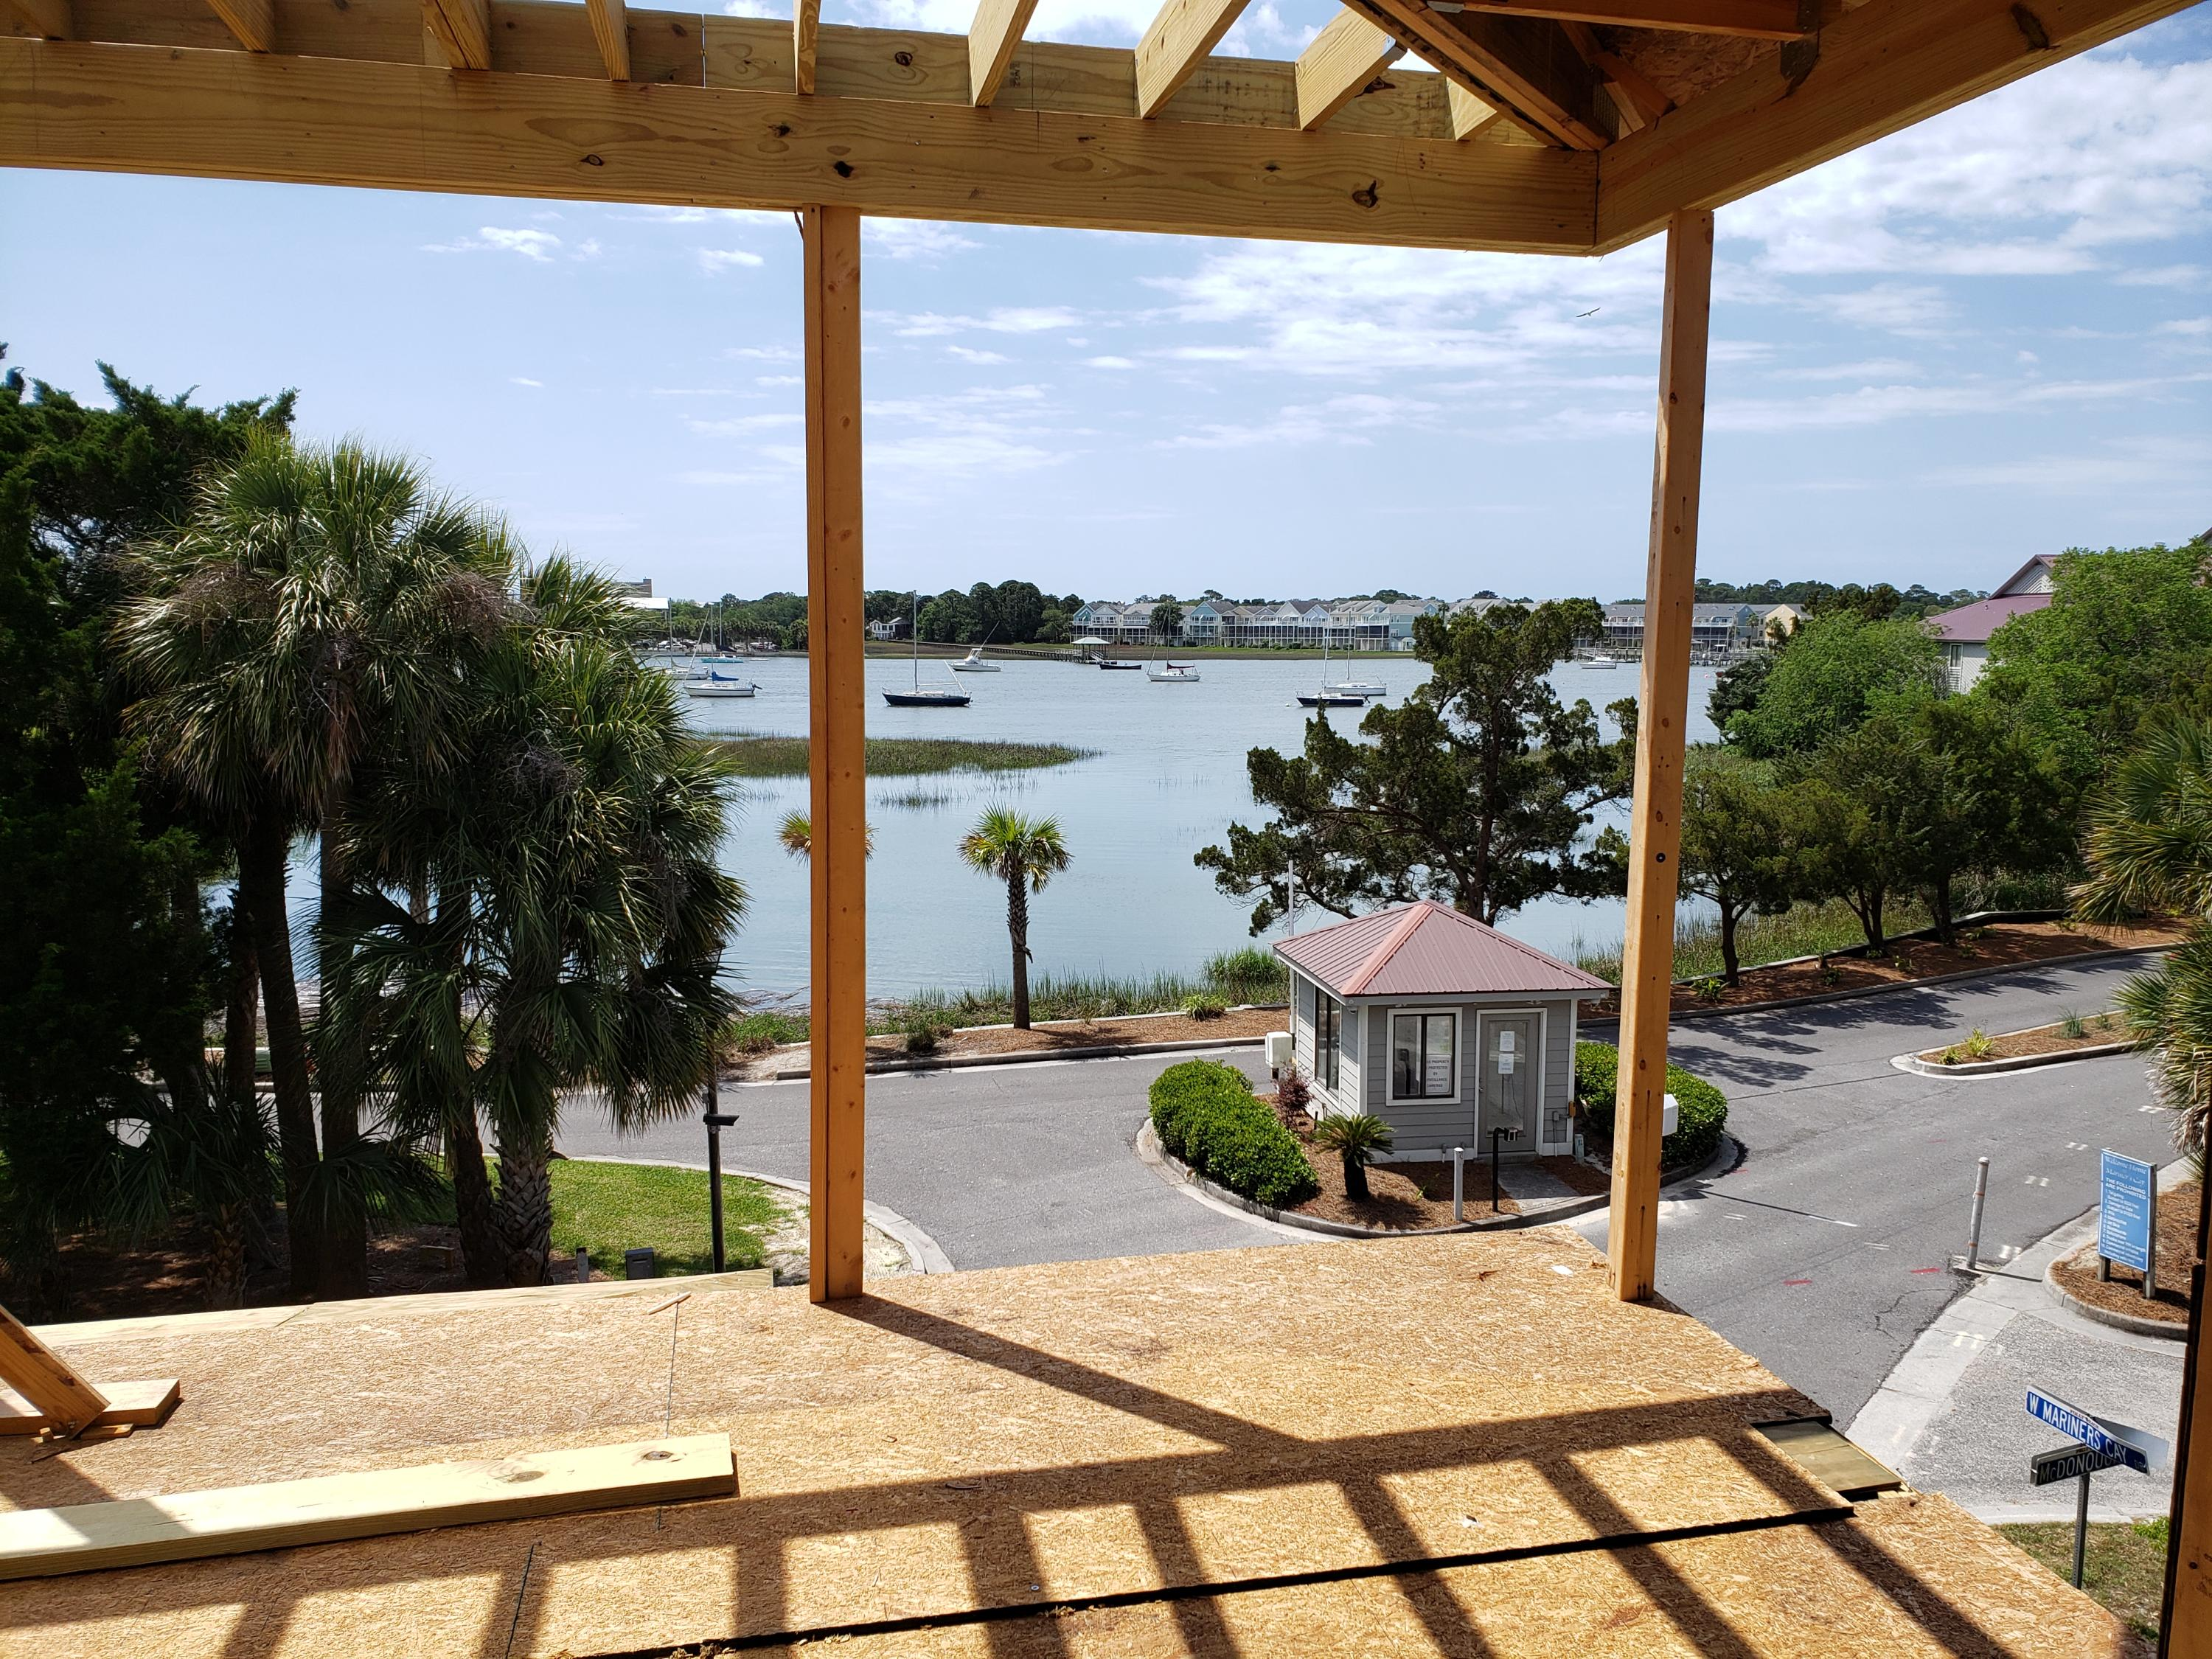 Mariners Cay Homes For Sale - 14 Mariners Cay, Folly Beach, SC - 26